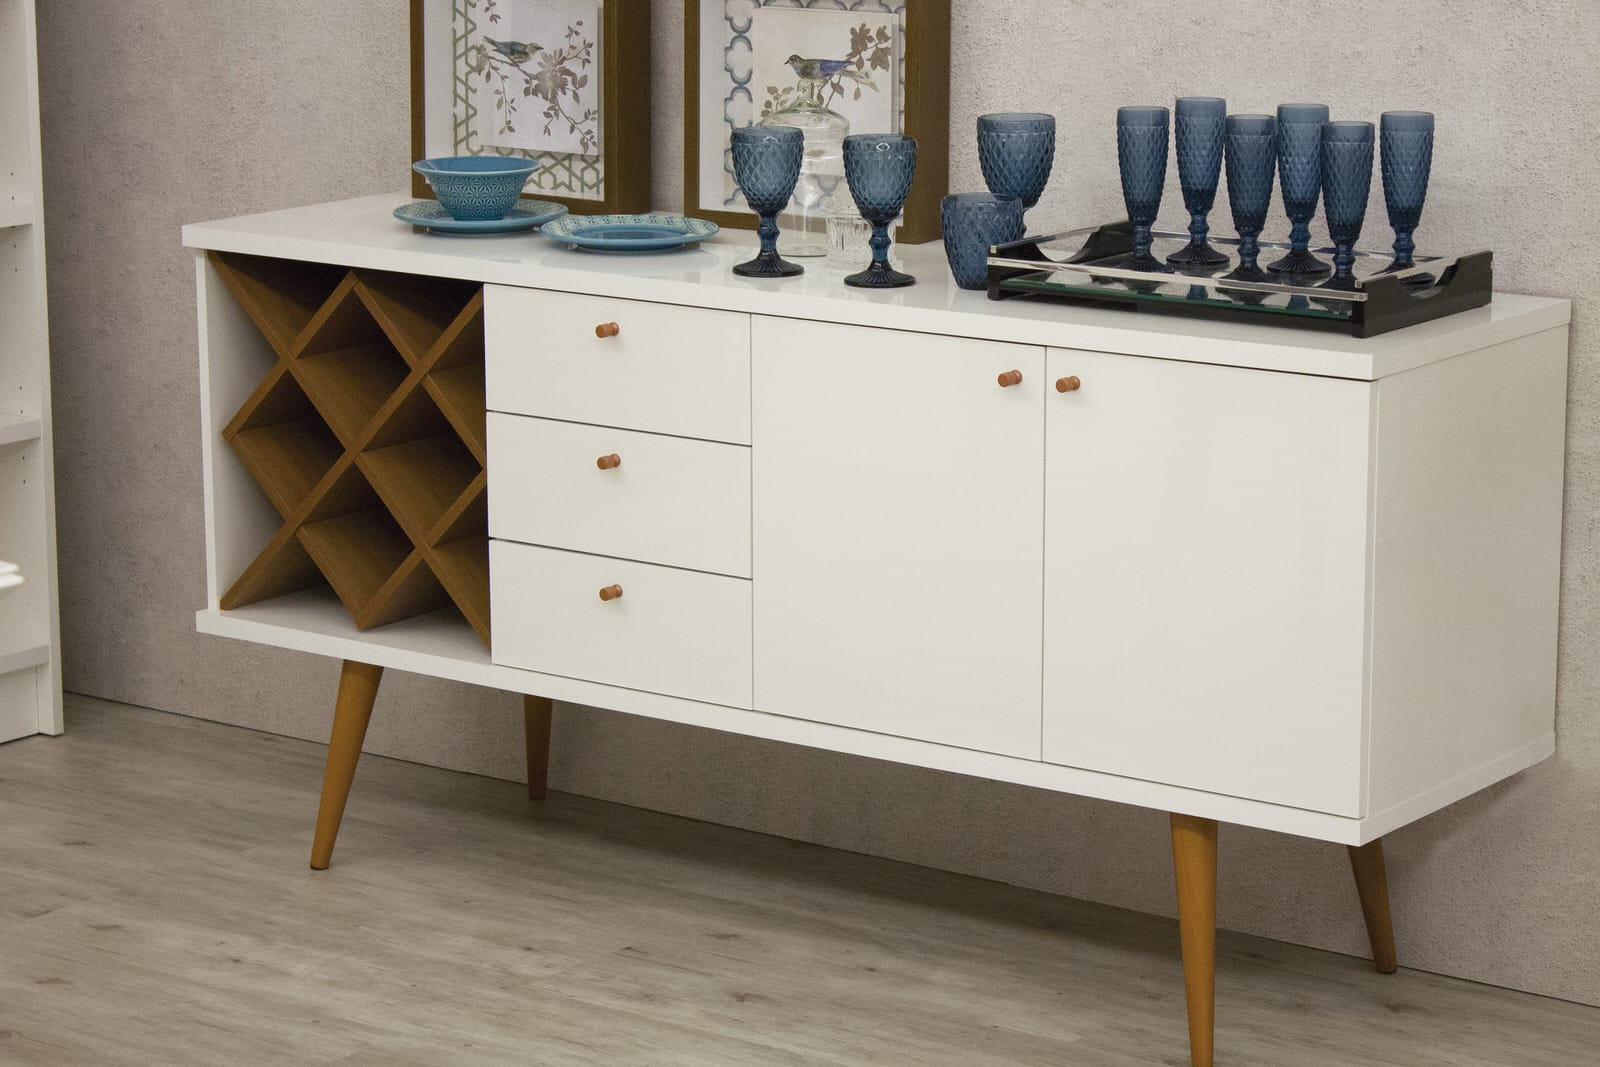 Utopia Off White Maple Cream 4 Bottle Wine Rack Sideboard Buffet Stand W 3 Drawers And 2 Shelves By Manhattan Comfort